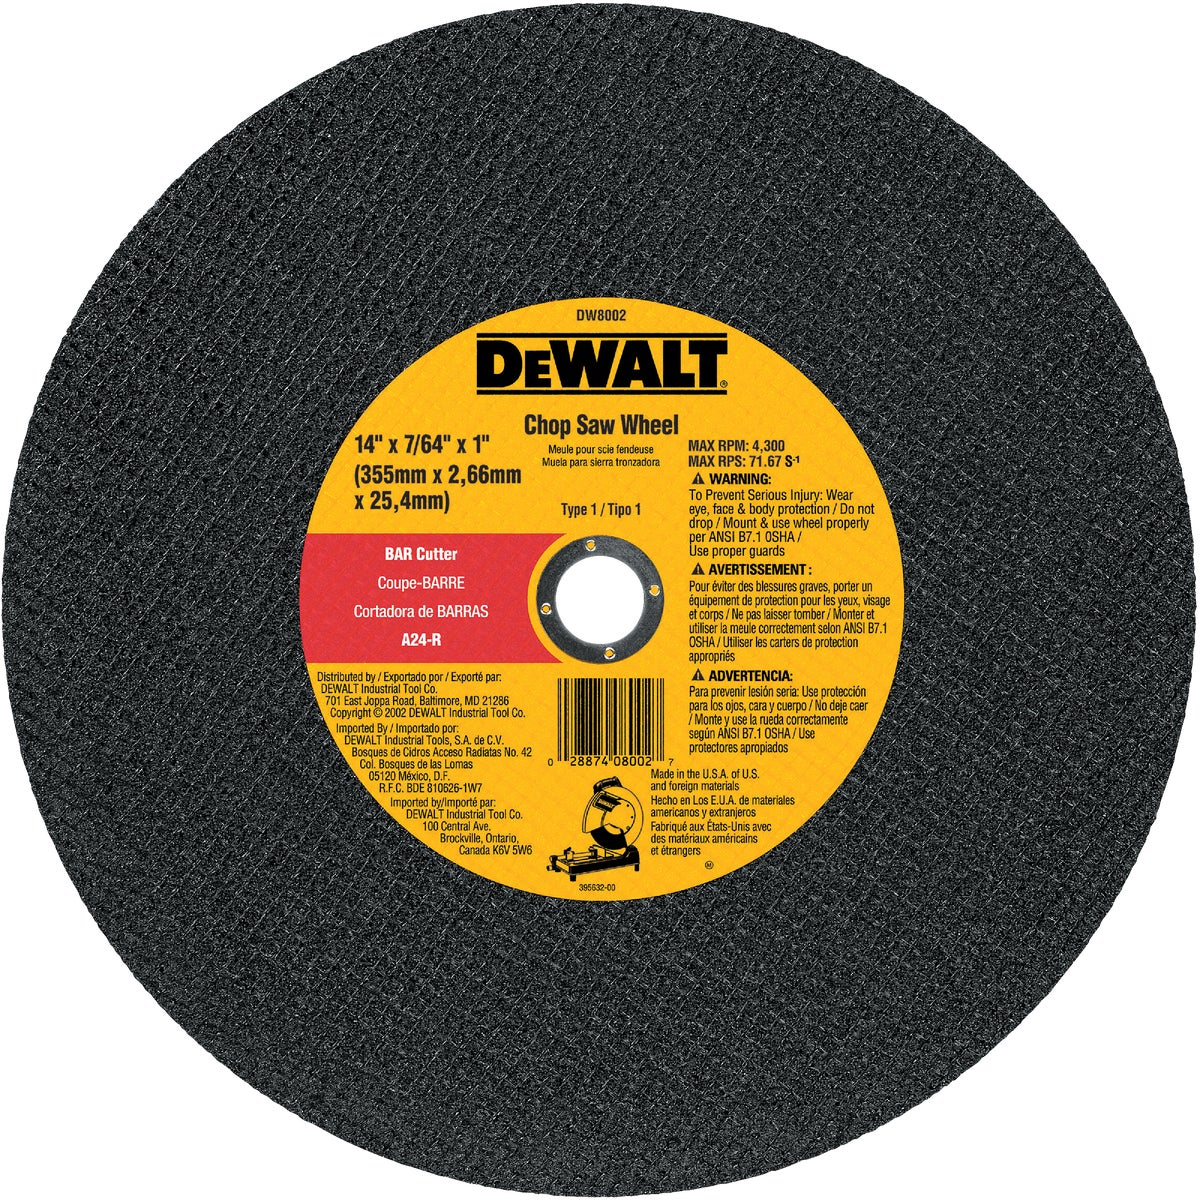 DEWALT DW8002 14-Inch by 7/64-Inch Bar Cutter Chop Saw Wheel